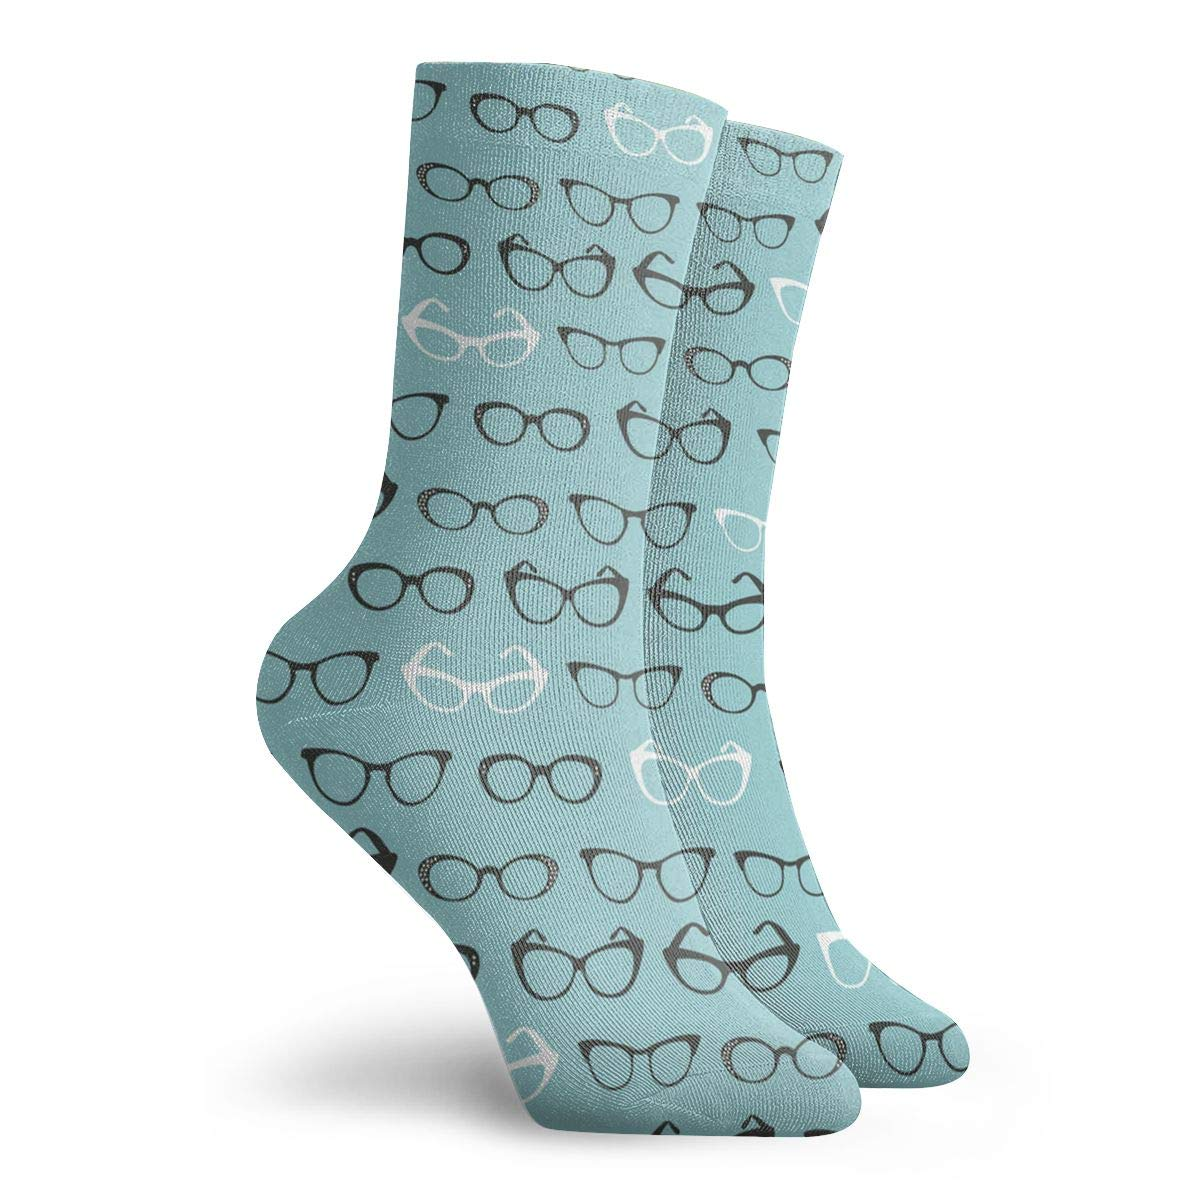 Cartoon Glasses Unisex Funny Casual Crew Socks Athletic Socks For Boys Girls Kids Teenagers